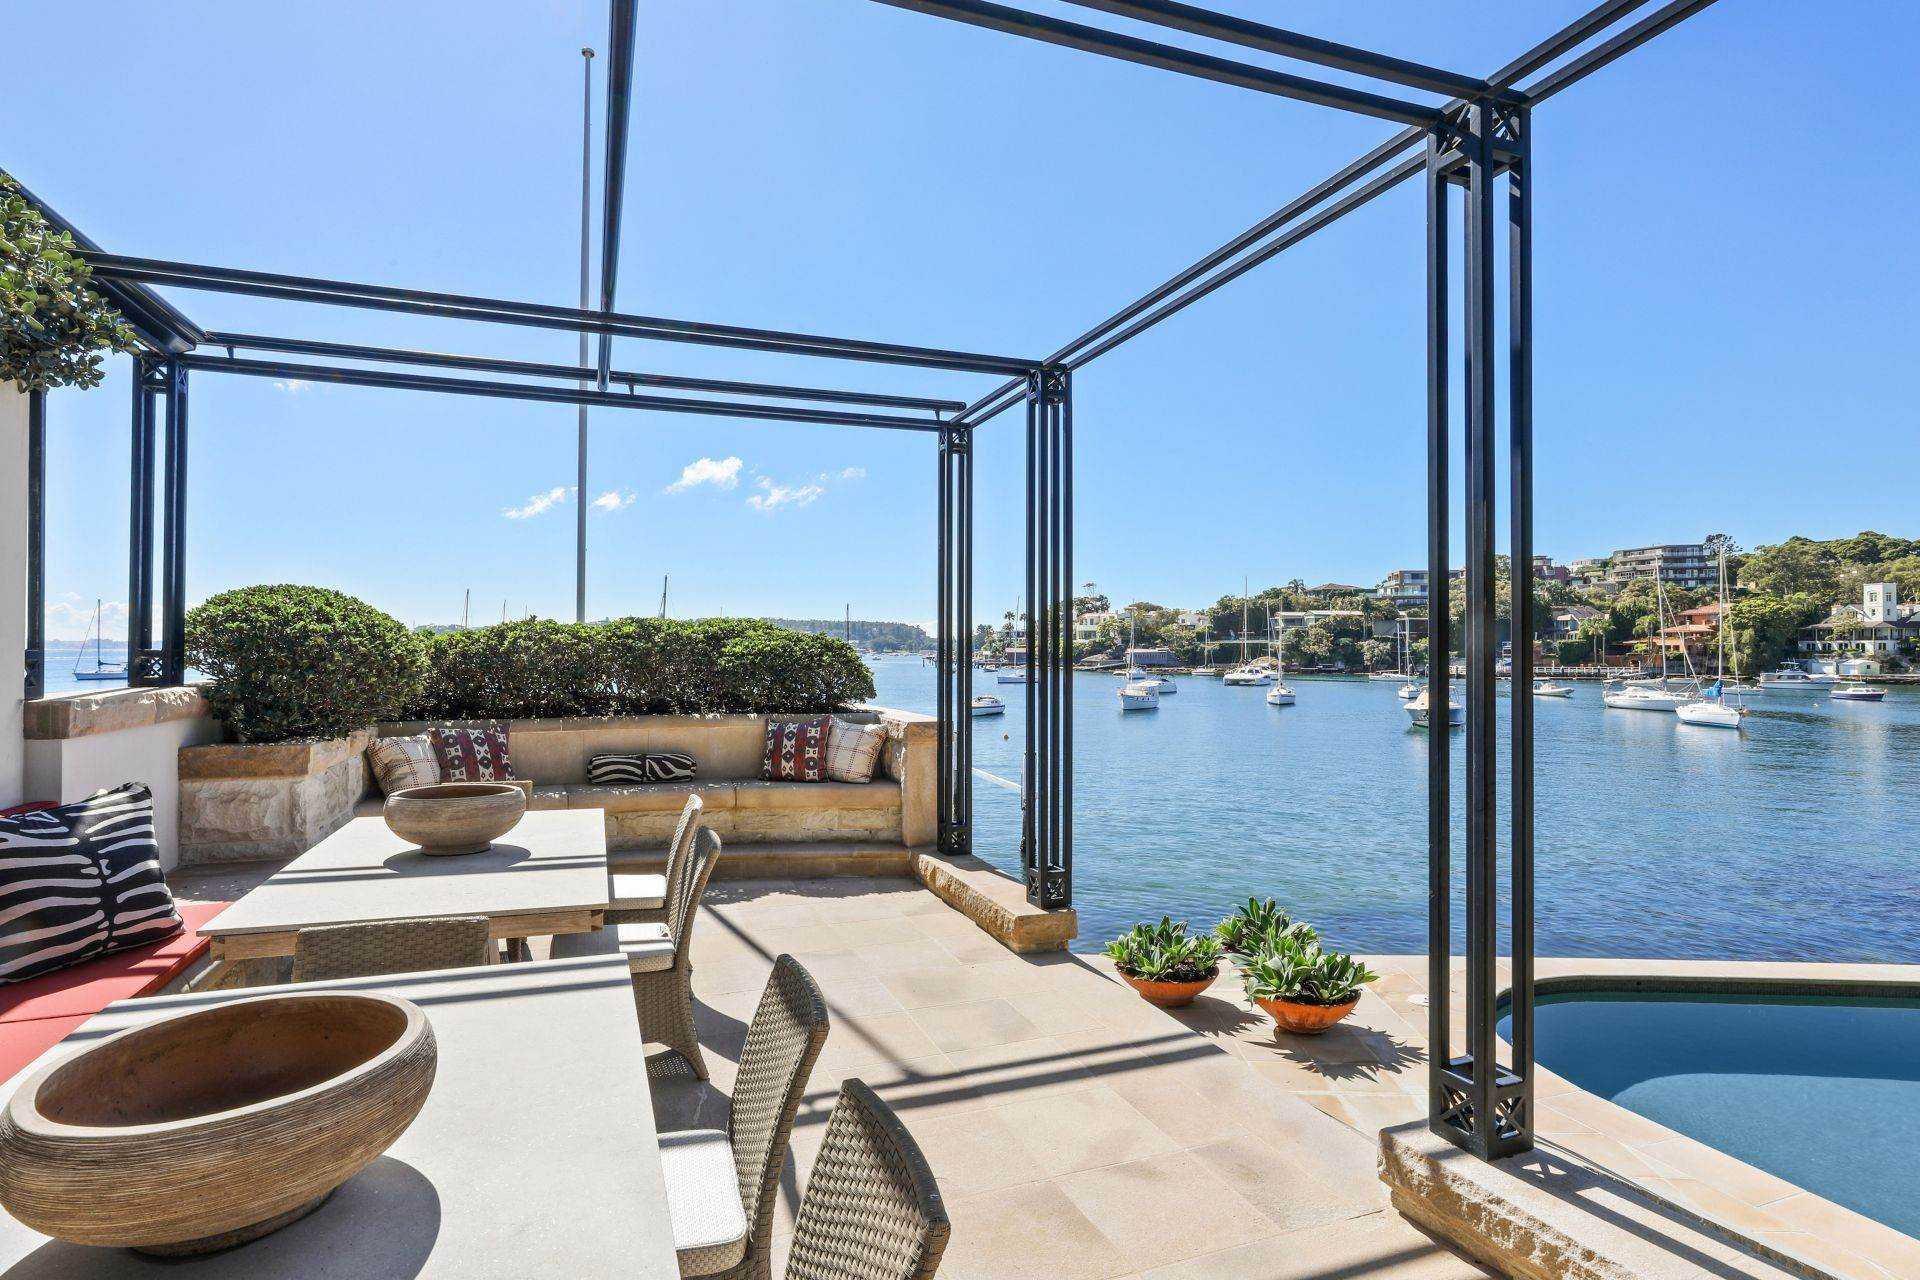 5. Single Family Home for Sale at Absolute Waterfront Estate With World-Class Boating Facilities 21 Coolong Road Vaucluse, New South Wales,2030 Australia